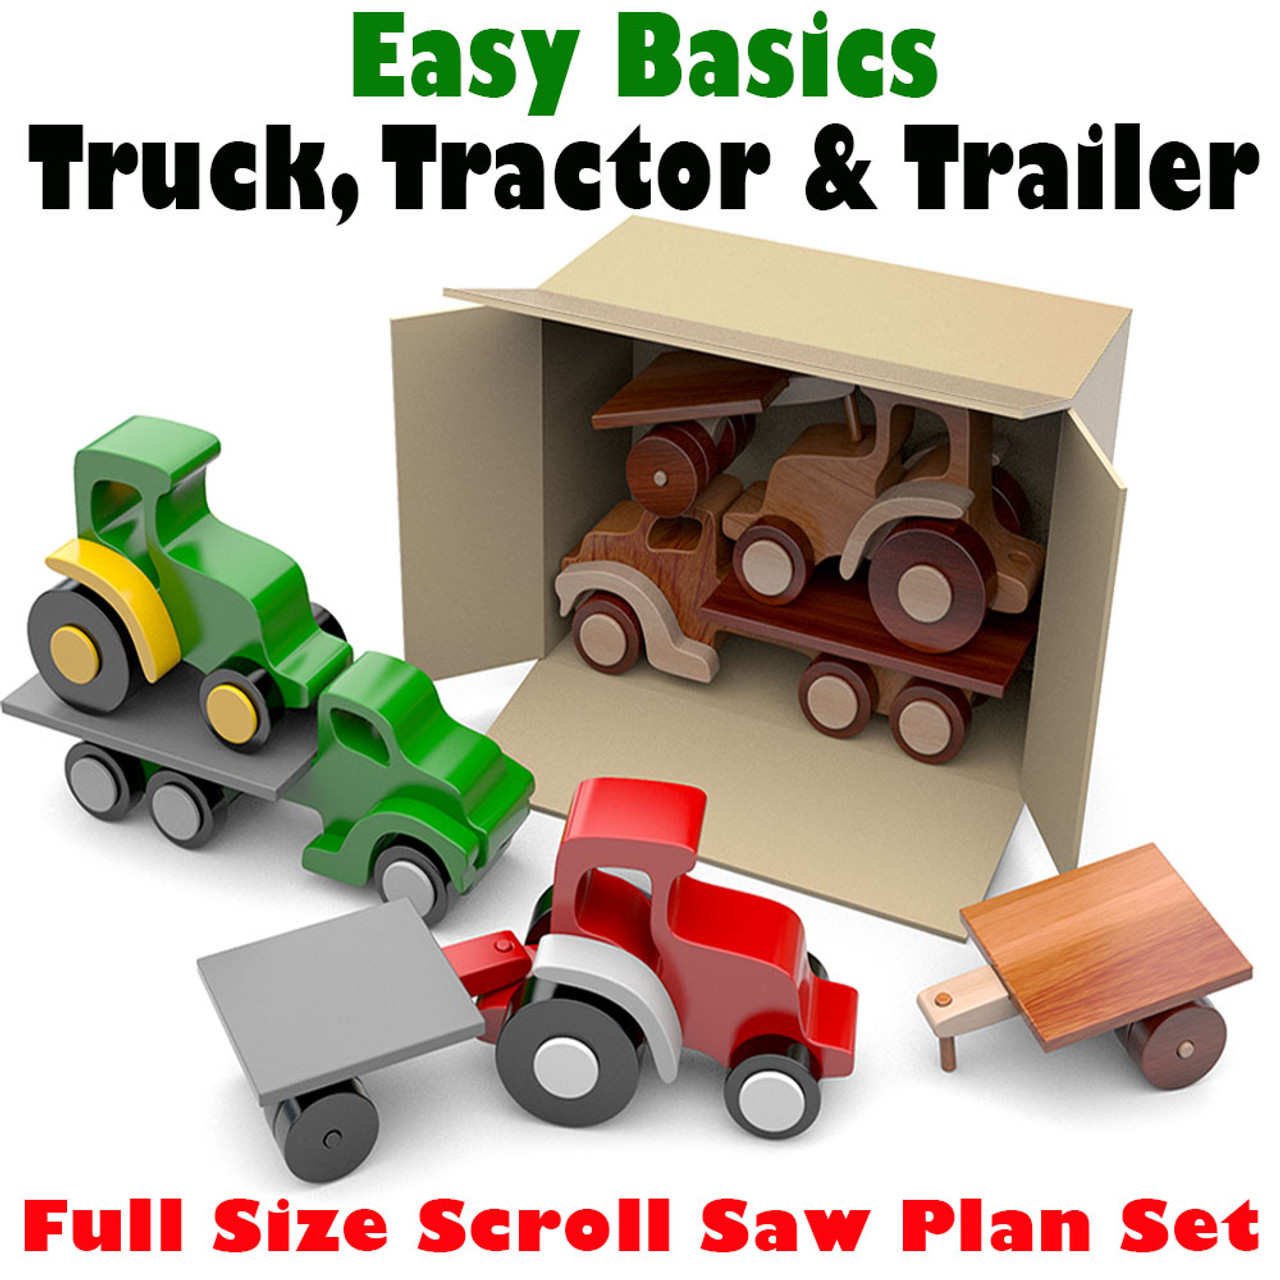 easy basics truck, tractor & trailer wood toy plans (pdf download)